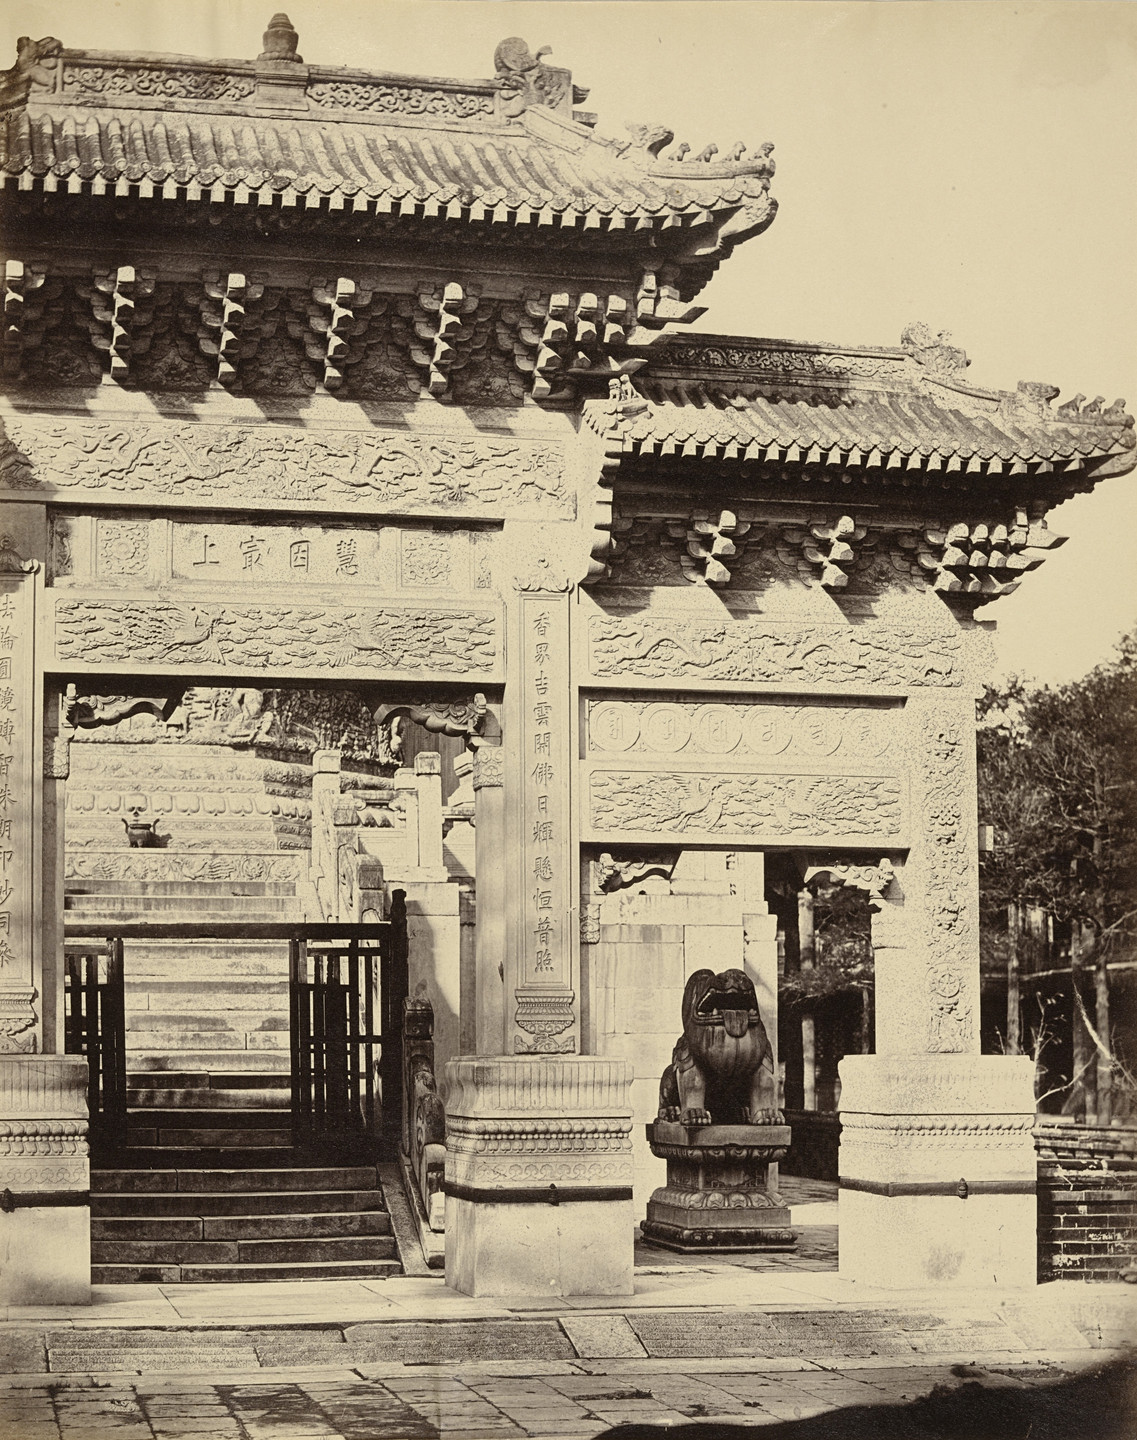 Felice Beato. Part of the Entrance to the Lama Temple, Near Peking. October 1860